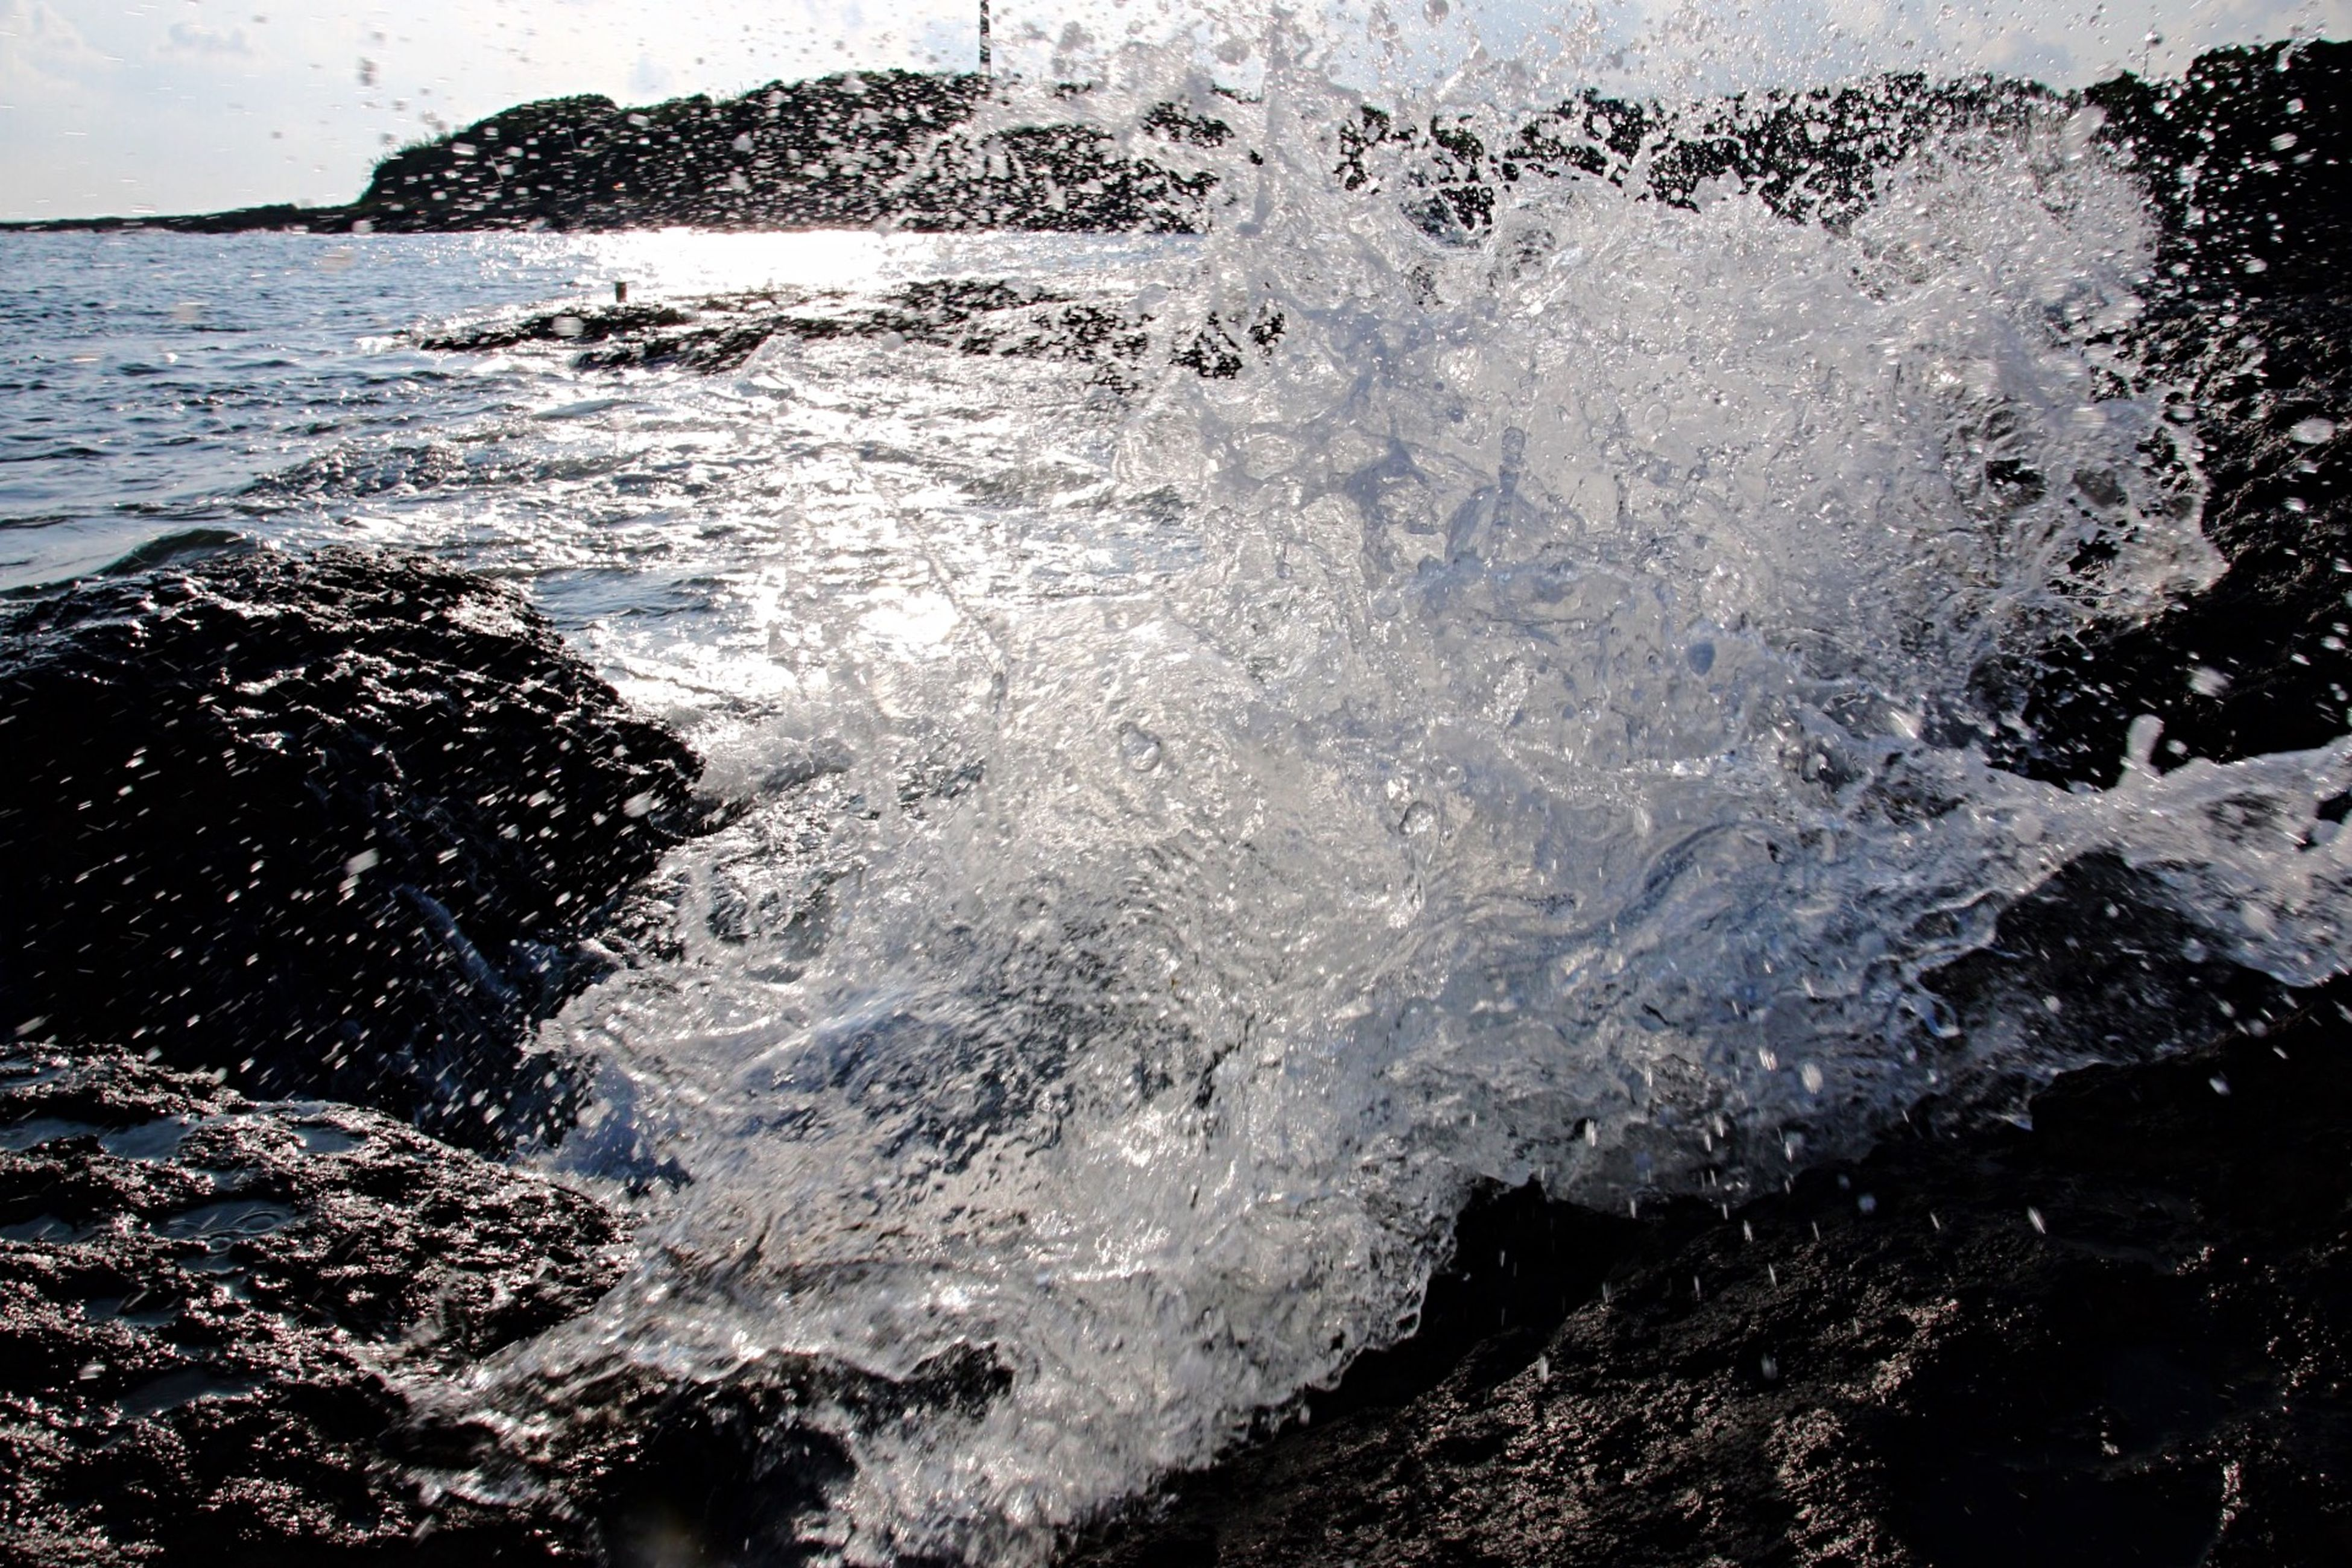 water, sea, splashing, surf, wave, motion, nature, rippled, high angle view, waterfront, beauty in nature, rock - object, wet, shore, day, scenics, outdoors, tranquility, beach, sunlight